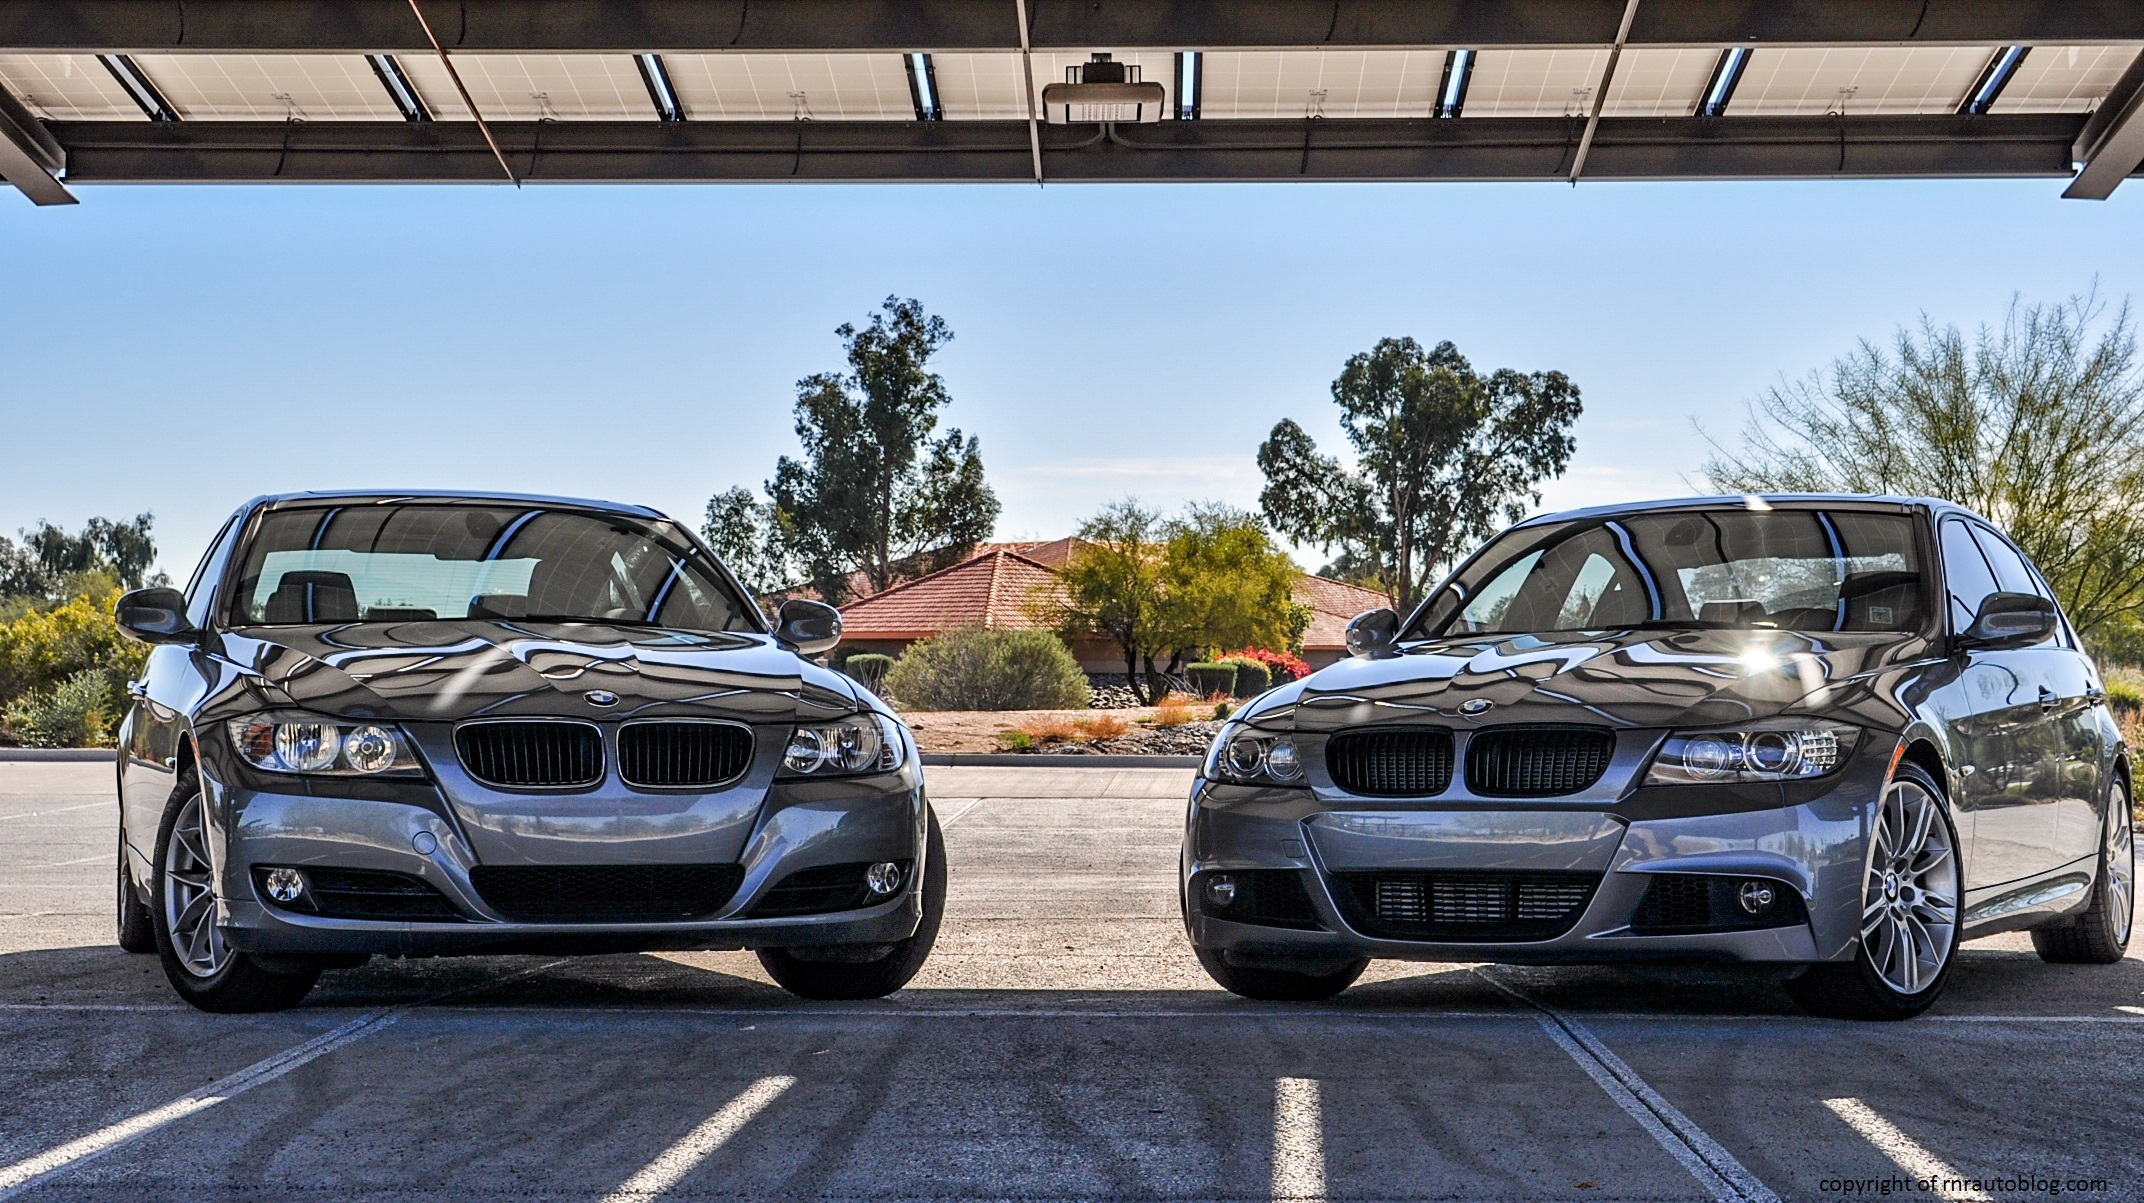 BMW I Review RNR Automotive Blog - Bmw 328i run flat tires